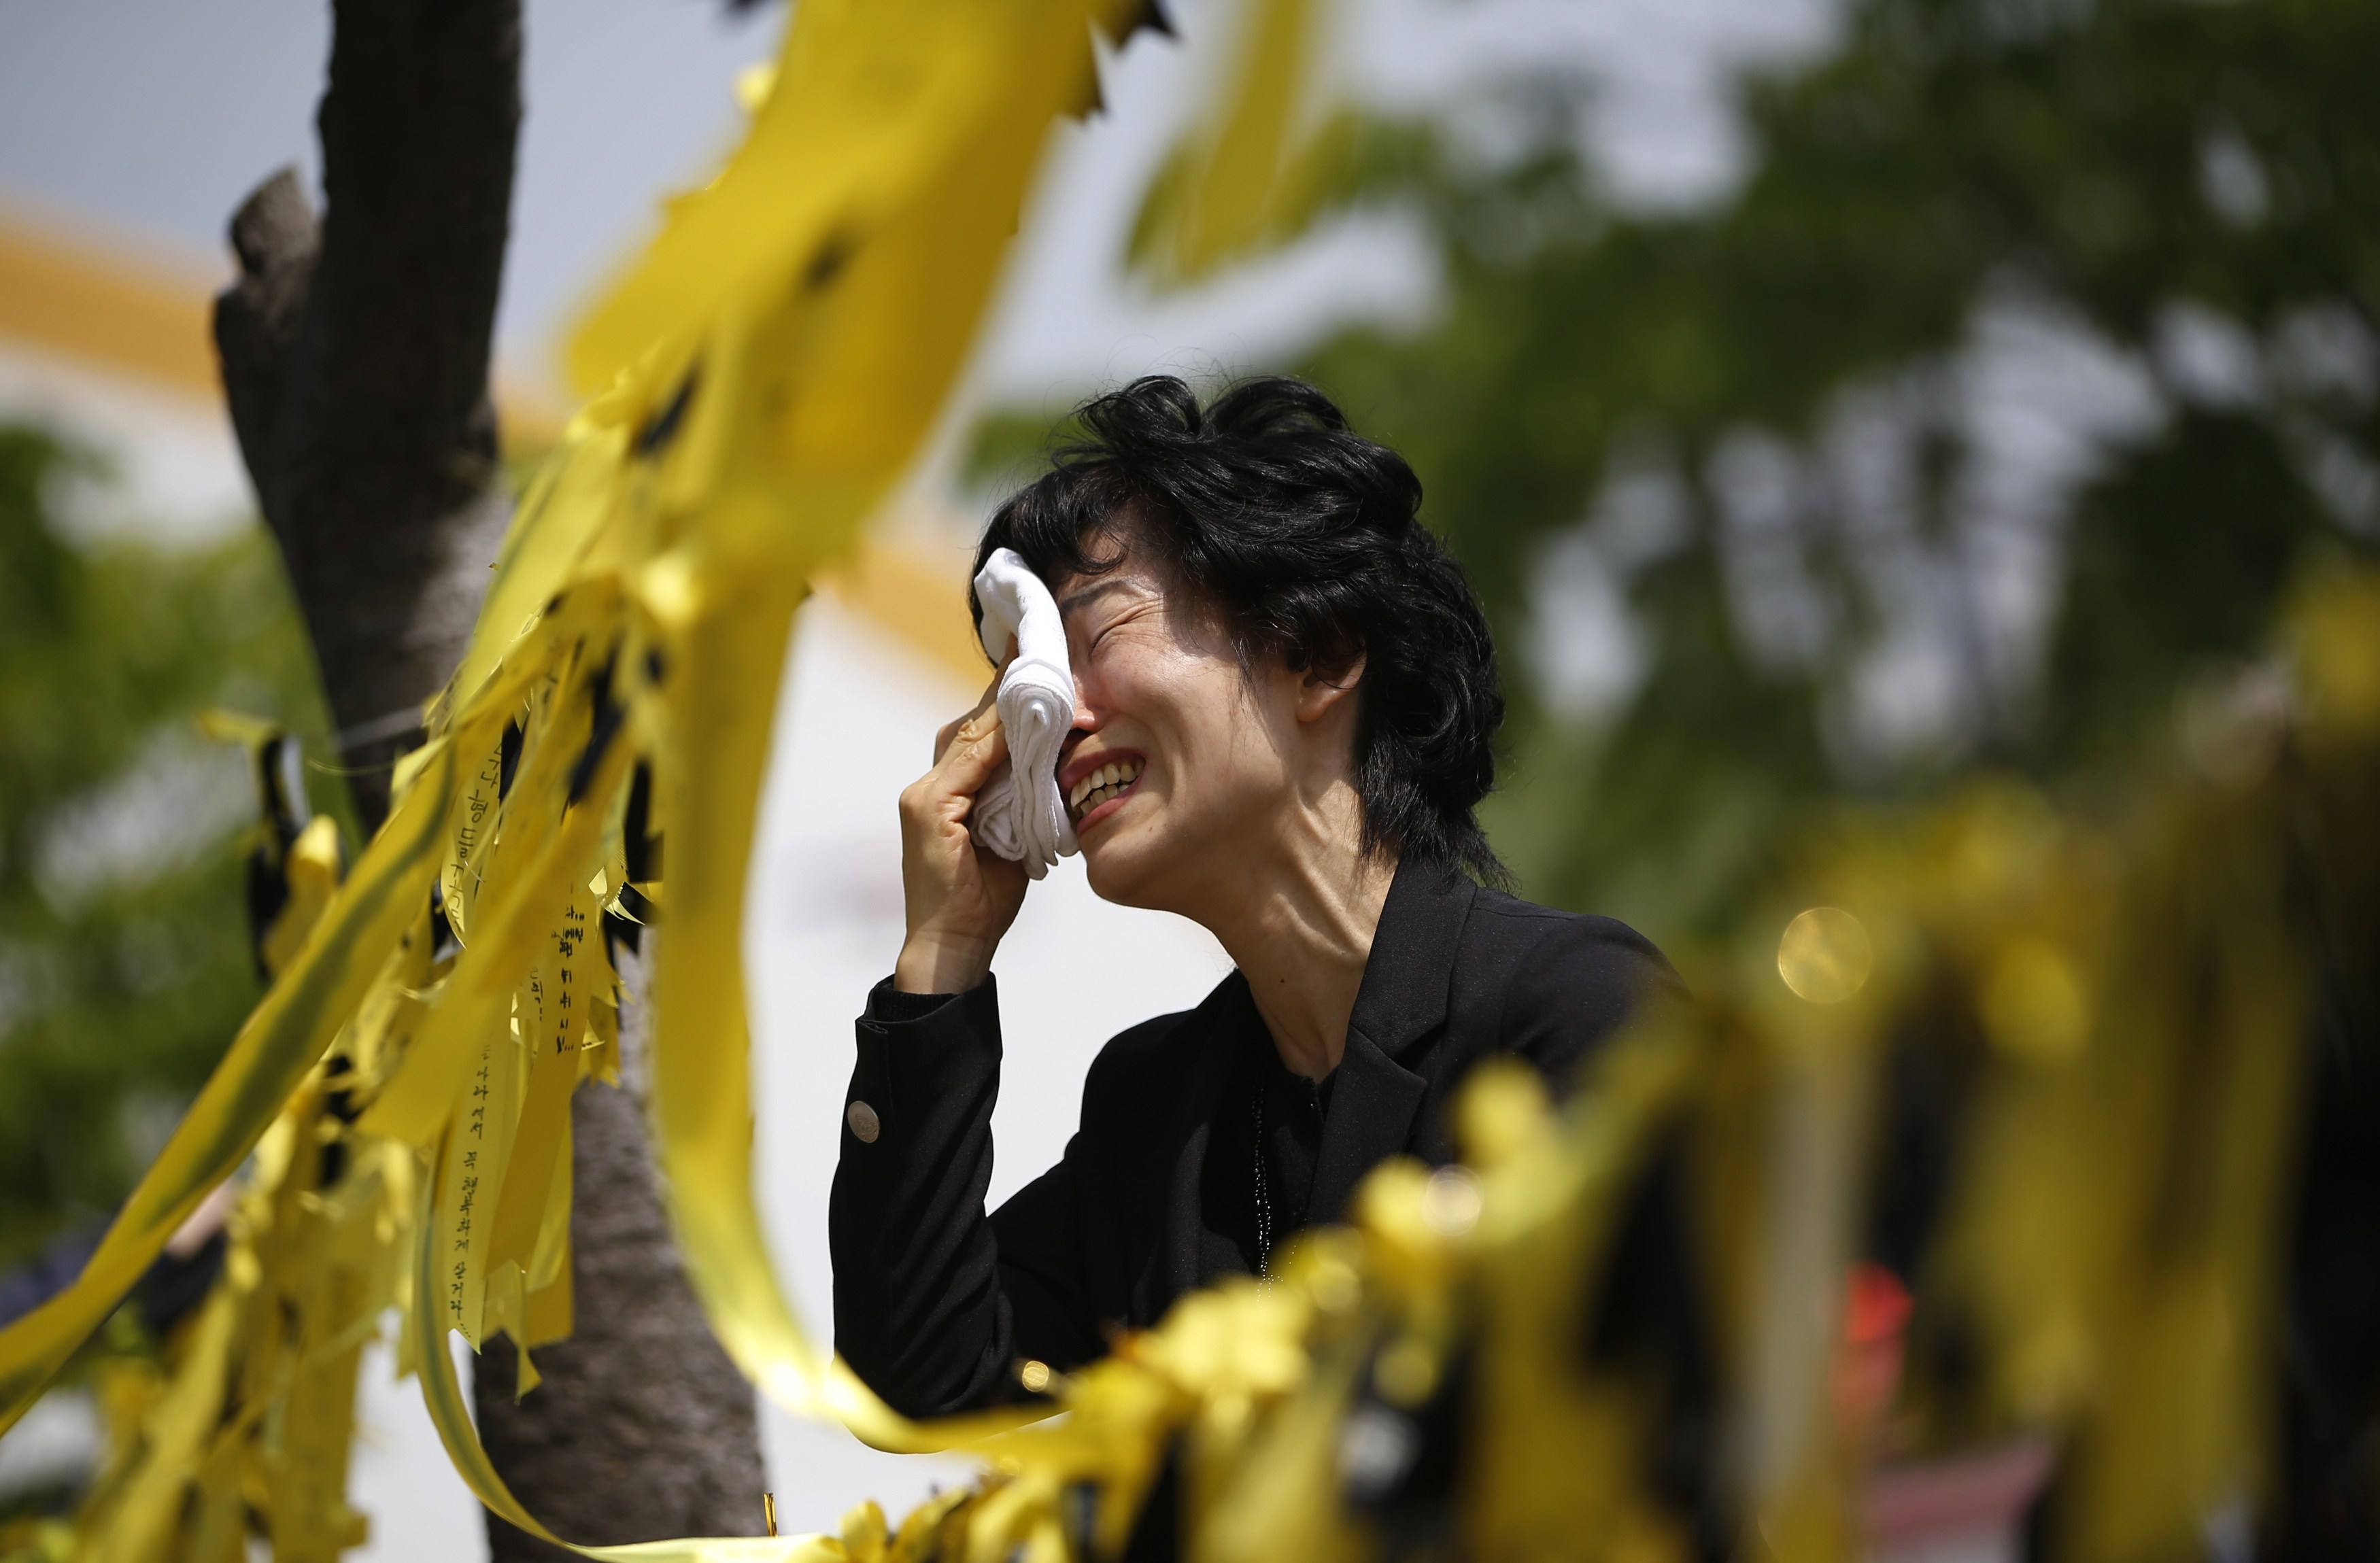 A mourner cries next to yellow ribbons dedicated to missing and dead passengers of the sunken Sewol passenger ship at the official memorial altar in Ansan, South Korea, on May 2. | REUTERS